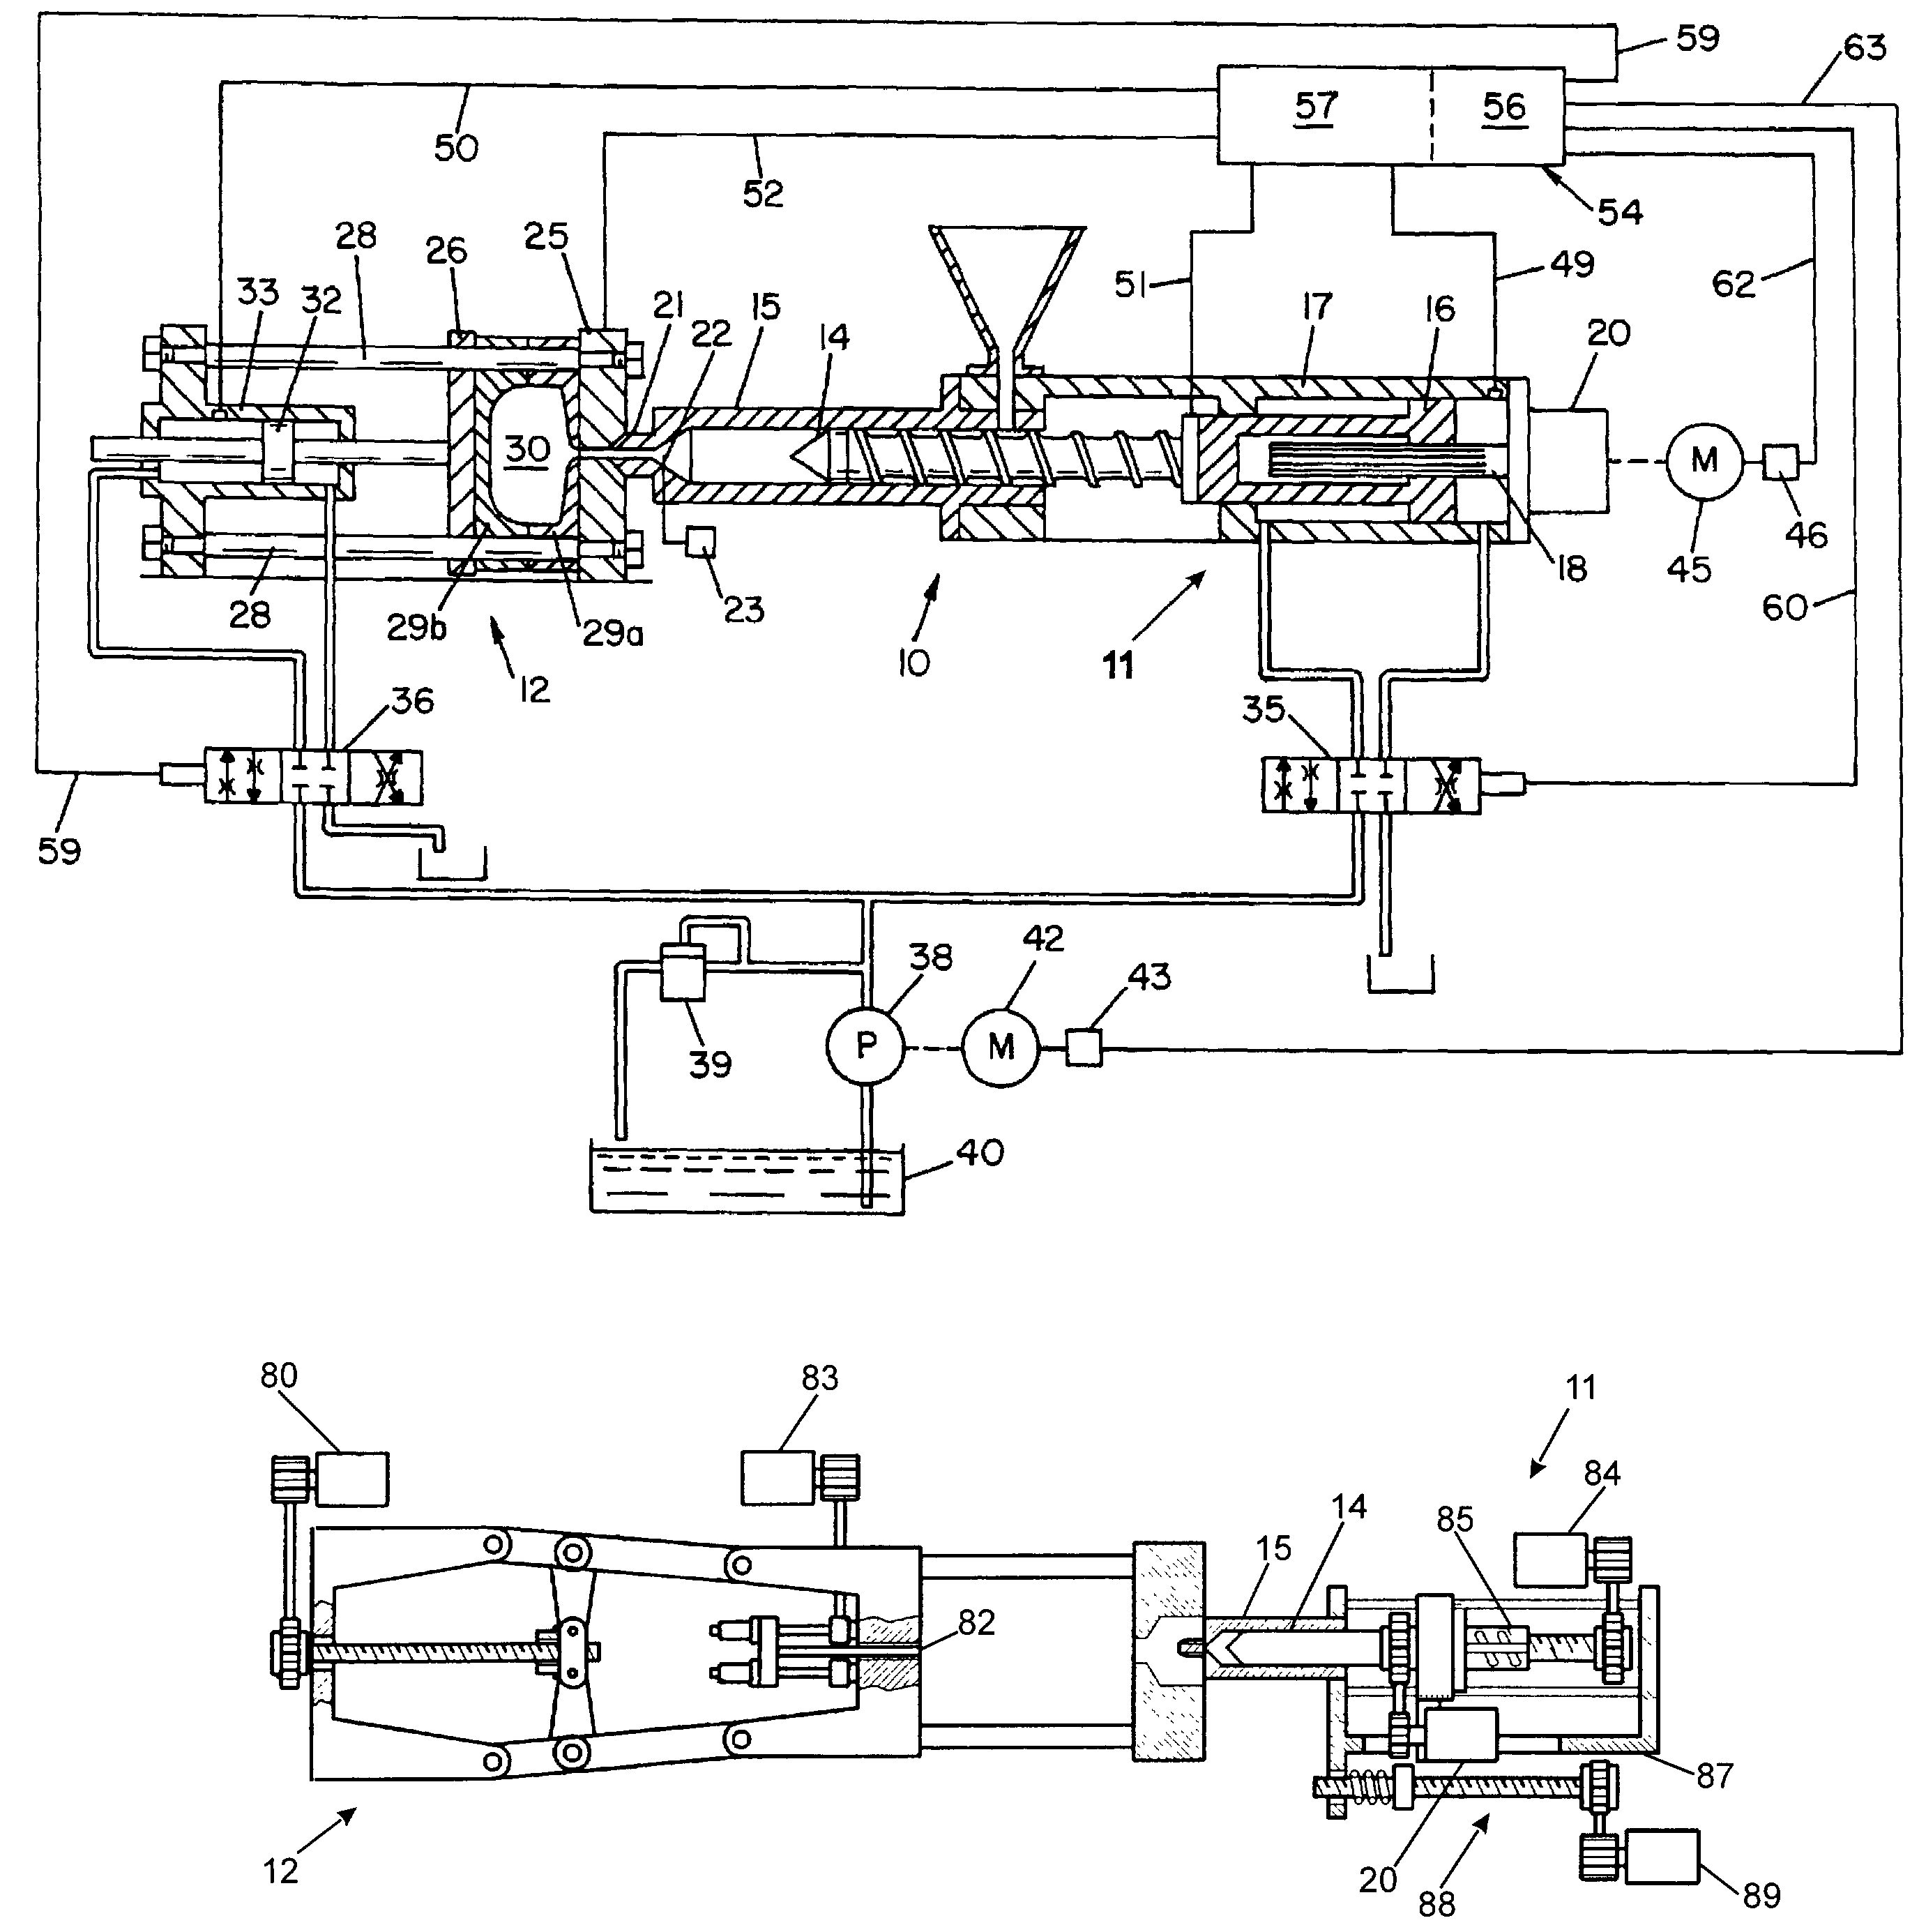 patent us7031800 - oo control for injection molding machine